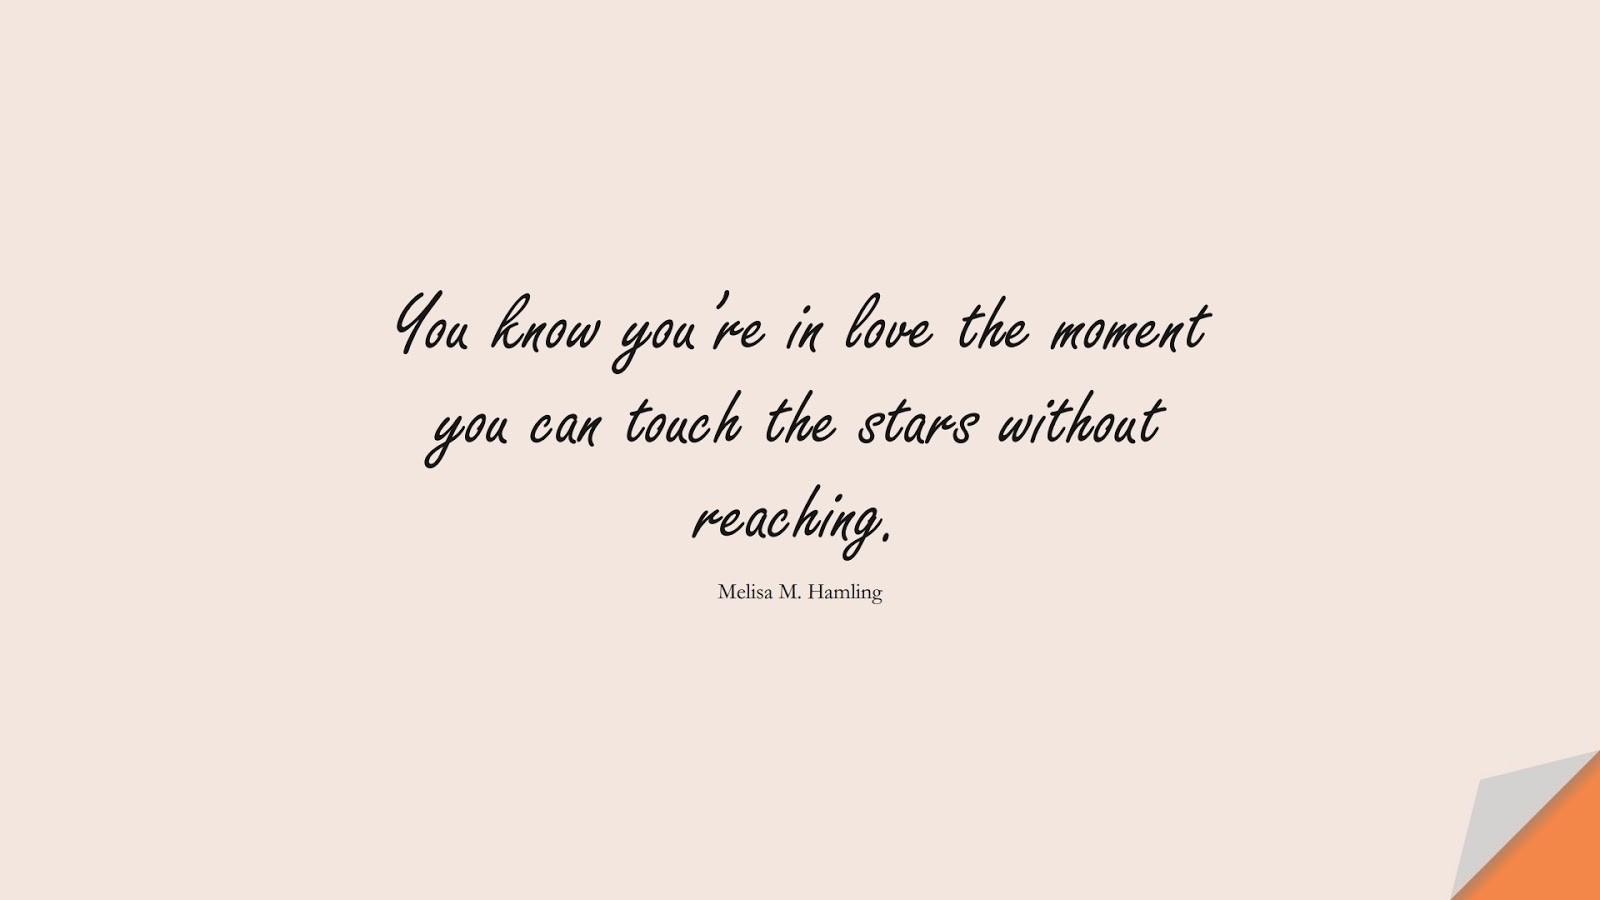 You know you're in love the moment you can touch the stars without reaching. (Melisa M. Hamling);  #LoveQuotes